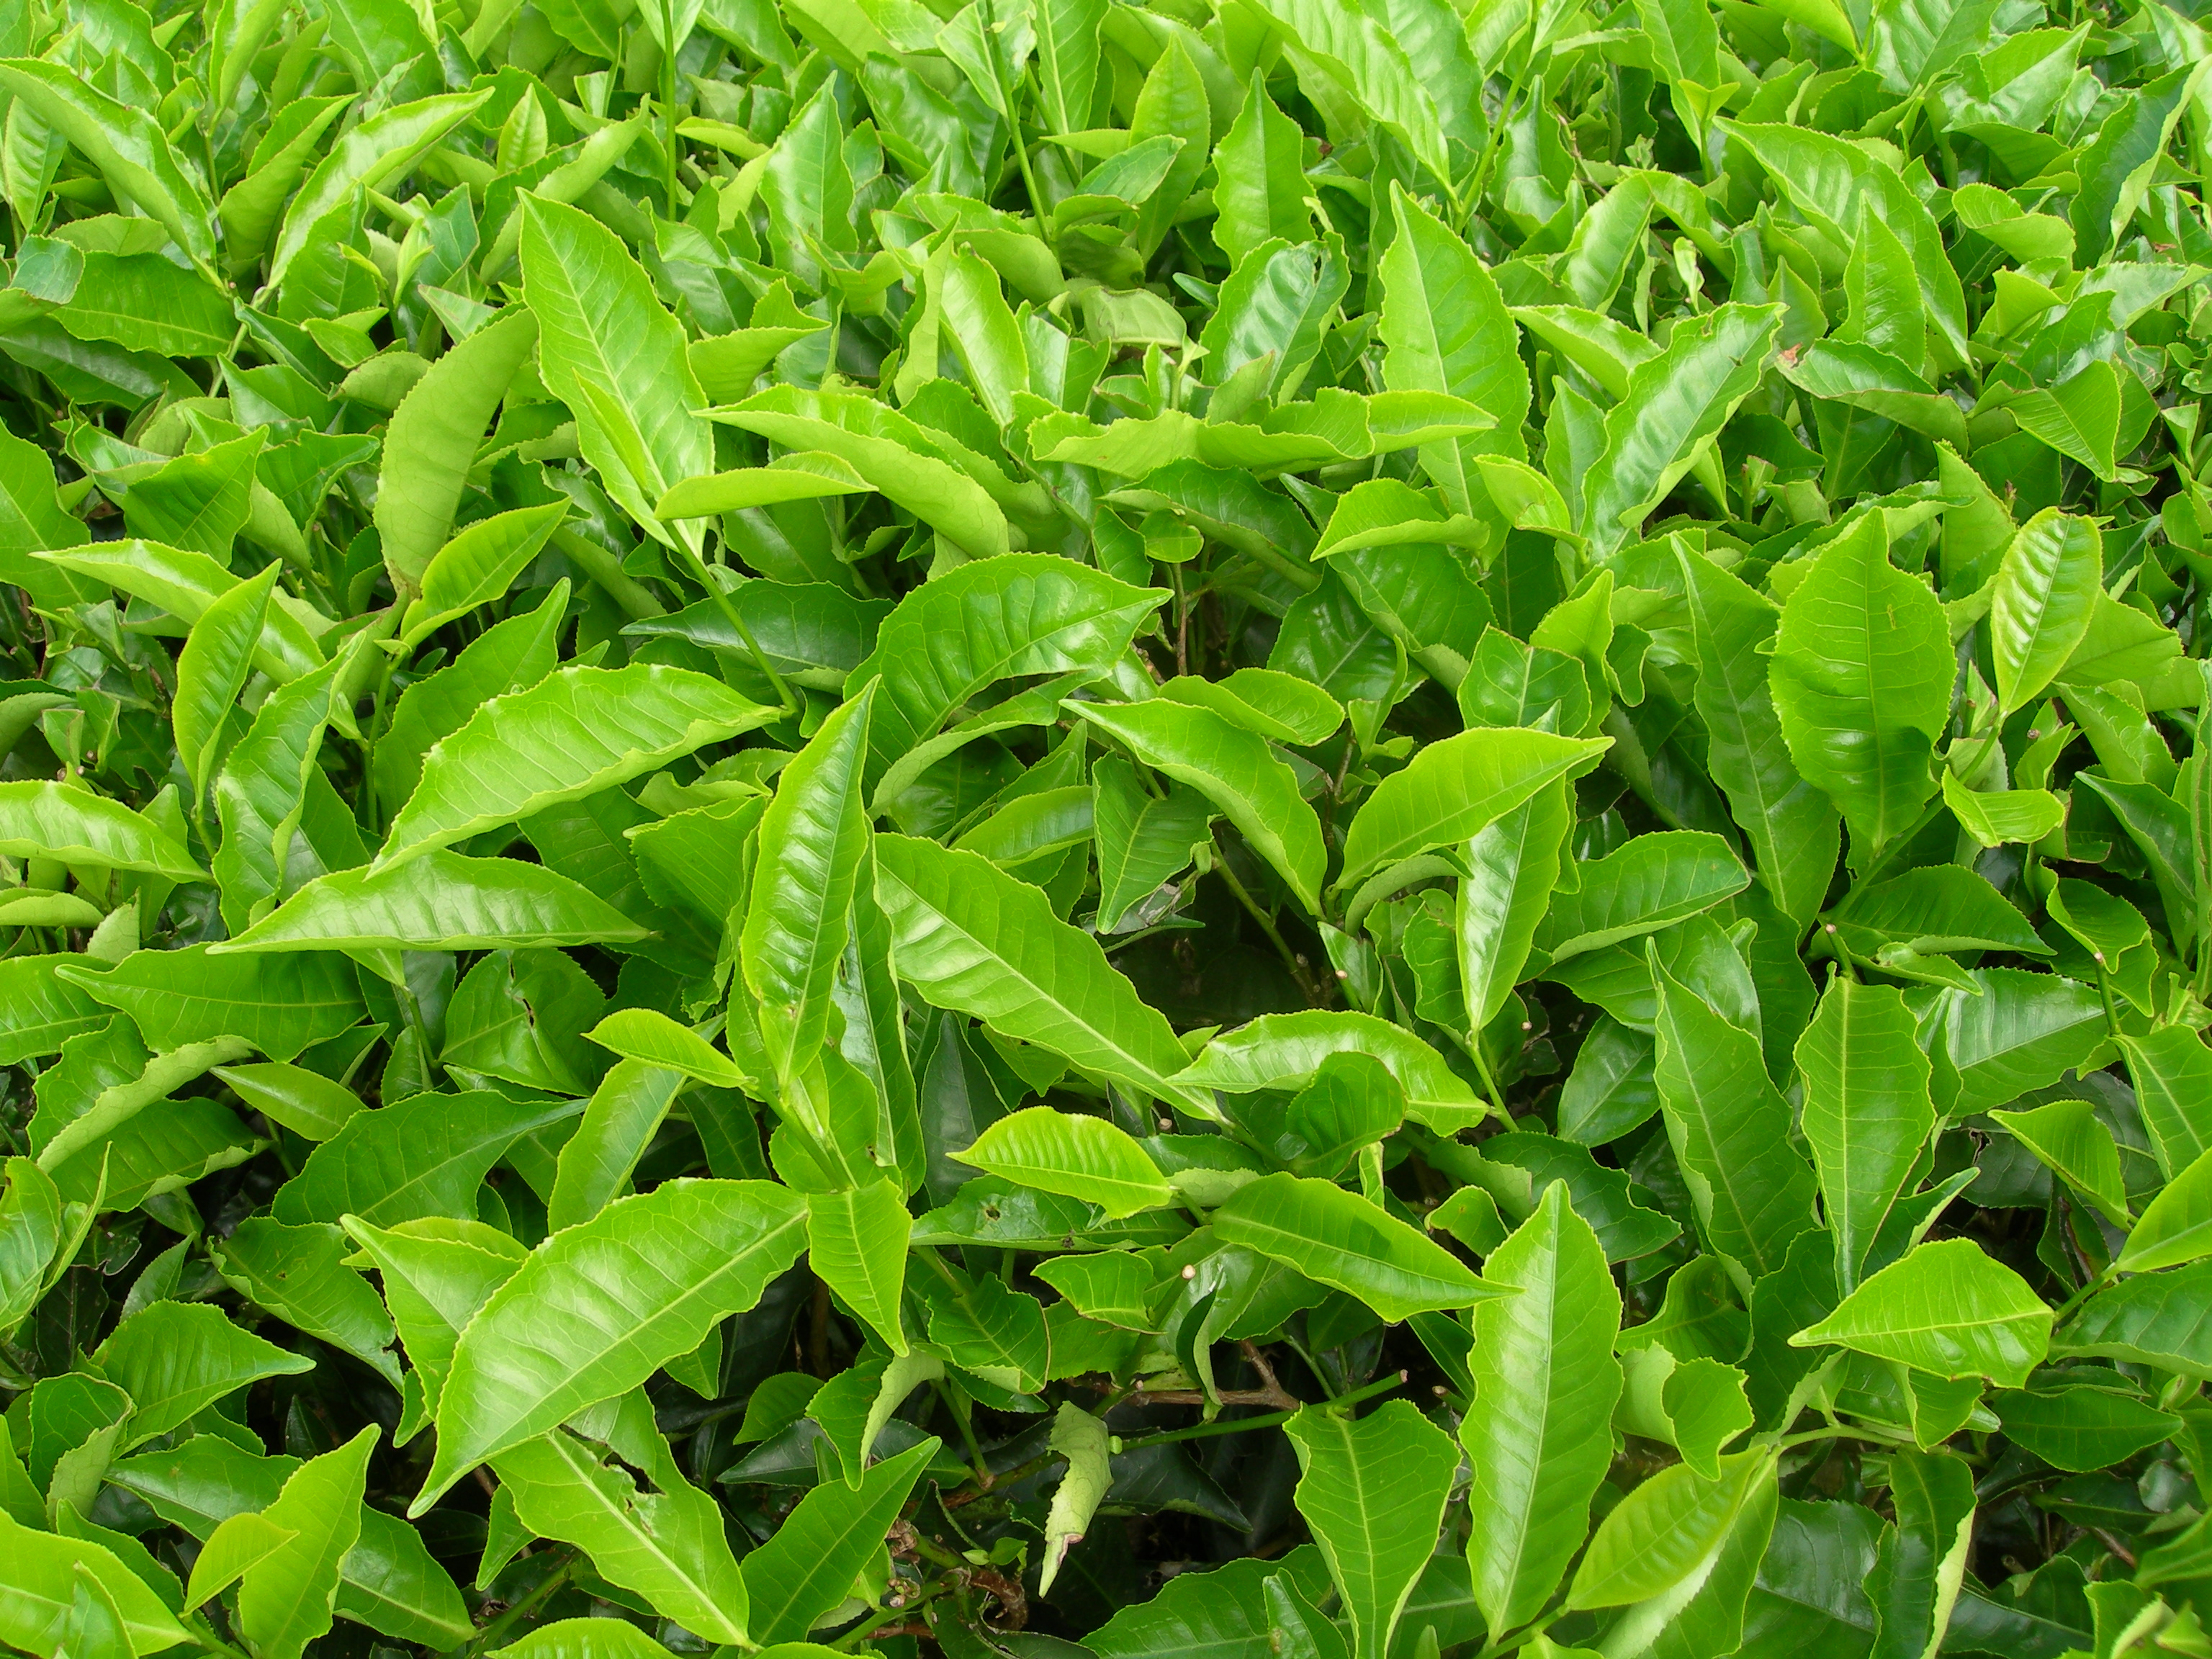 Description tea plants